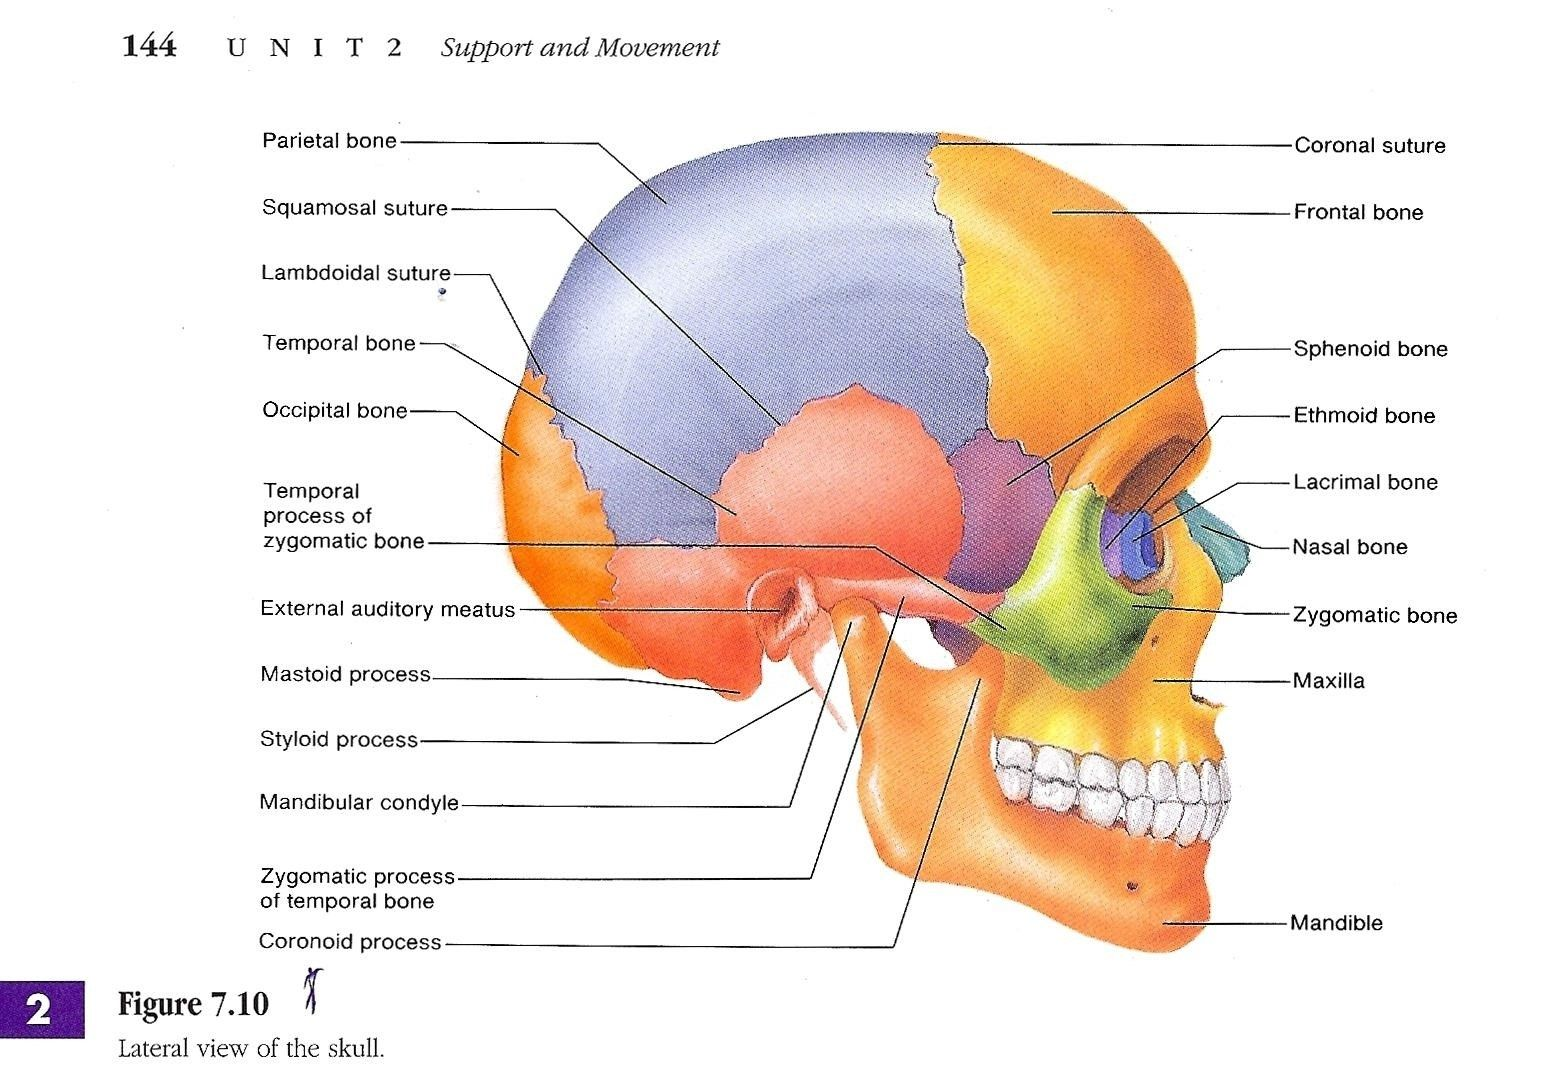 medium resolution of ethmoid bone diagram ethmoid bone diagram skull bone diagram photos skull labeling exercises human anatomy